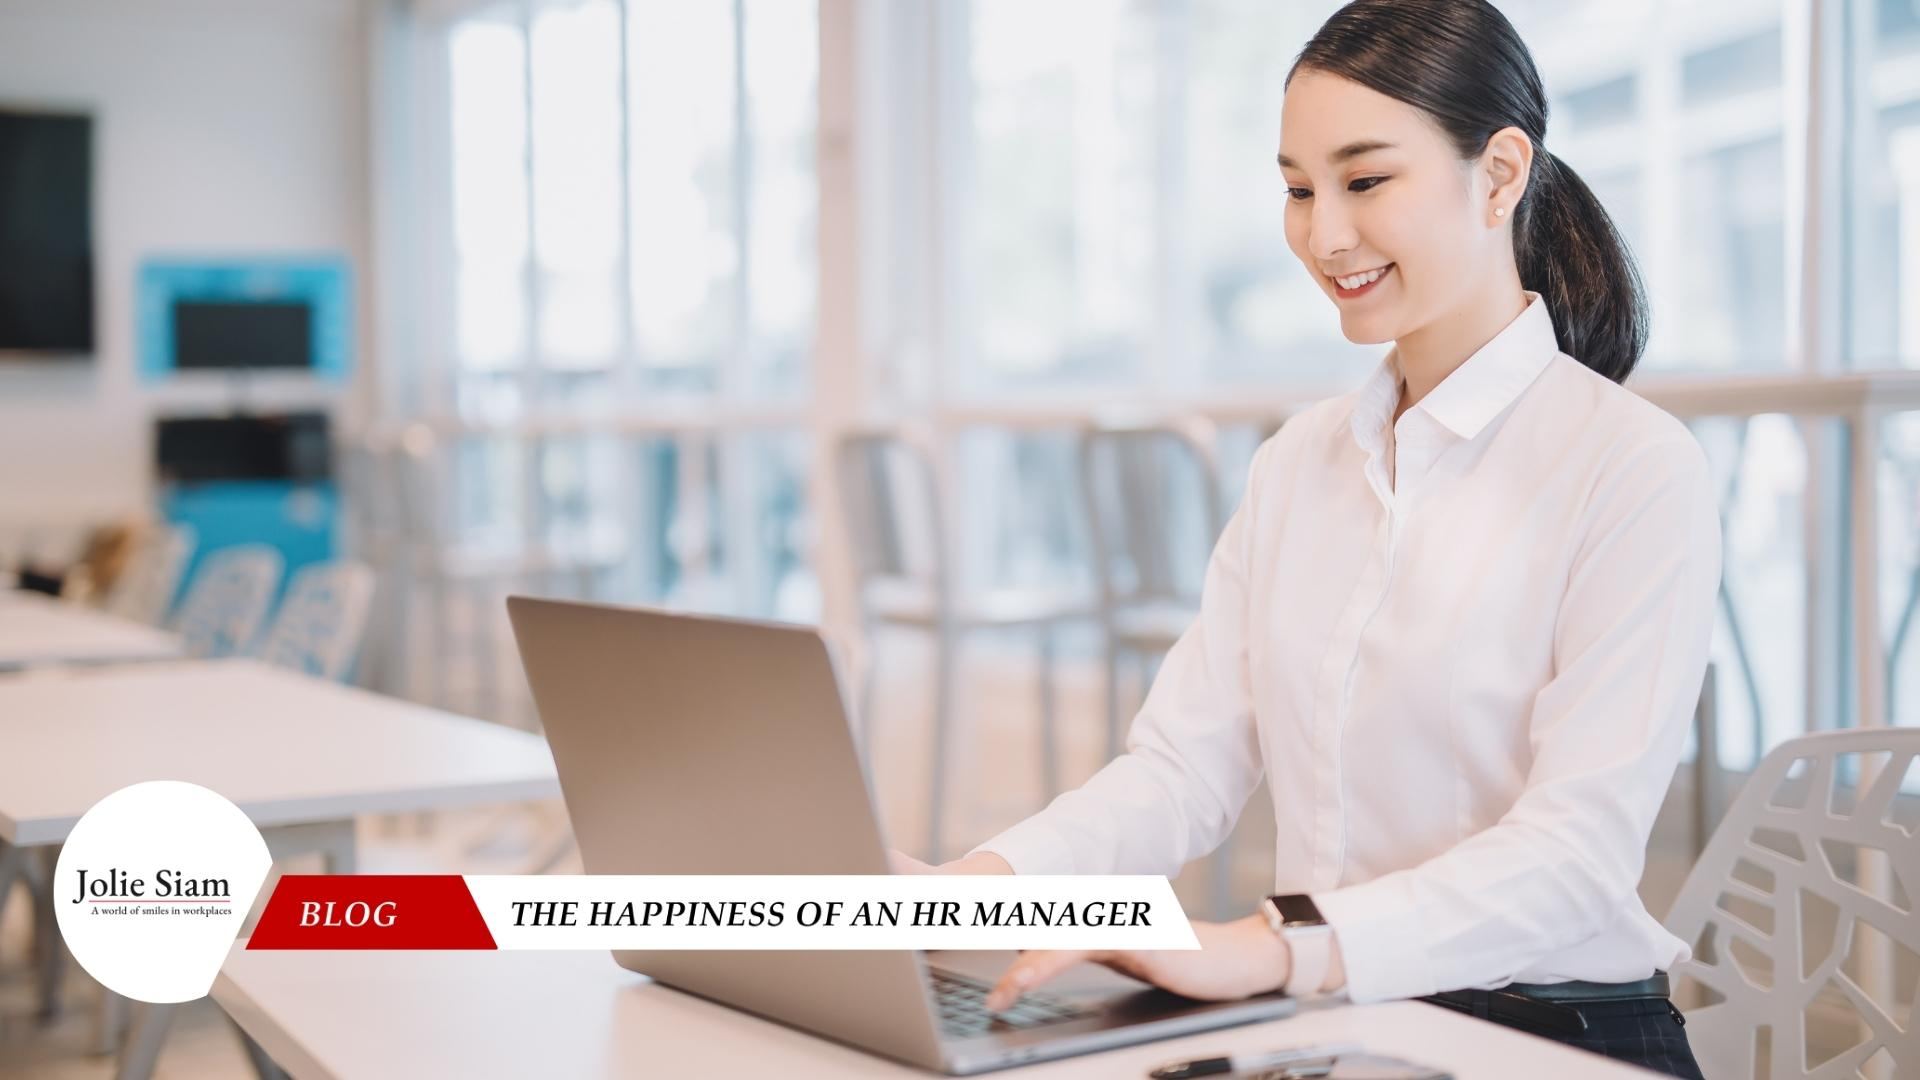 The happiness of HR managerment